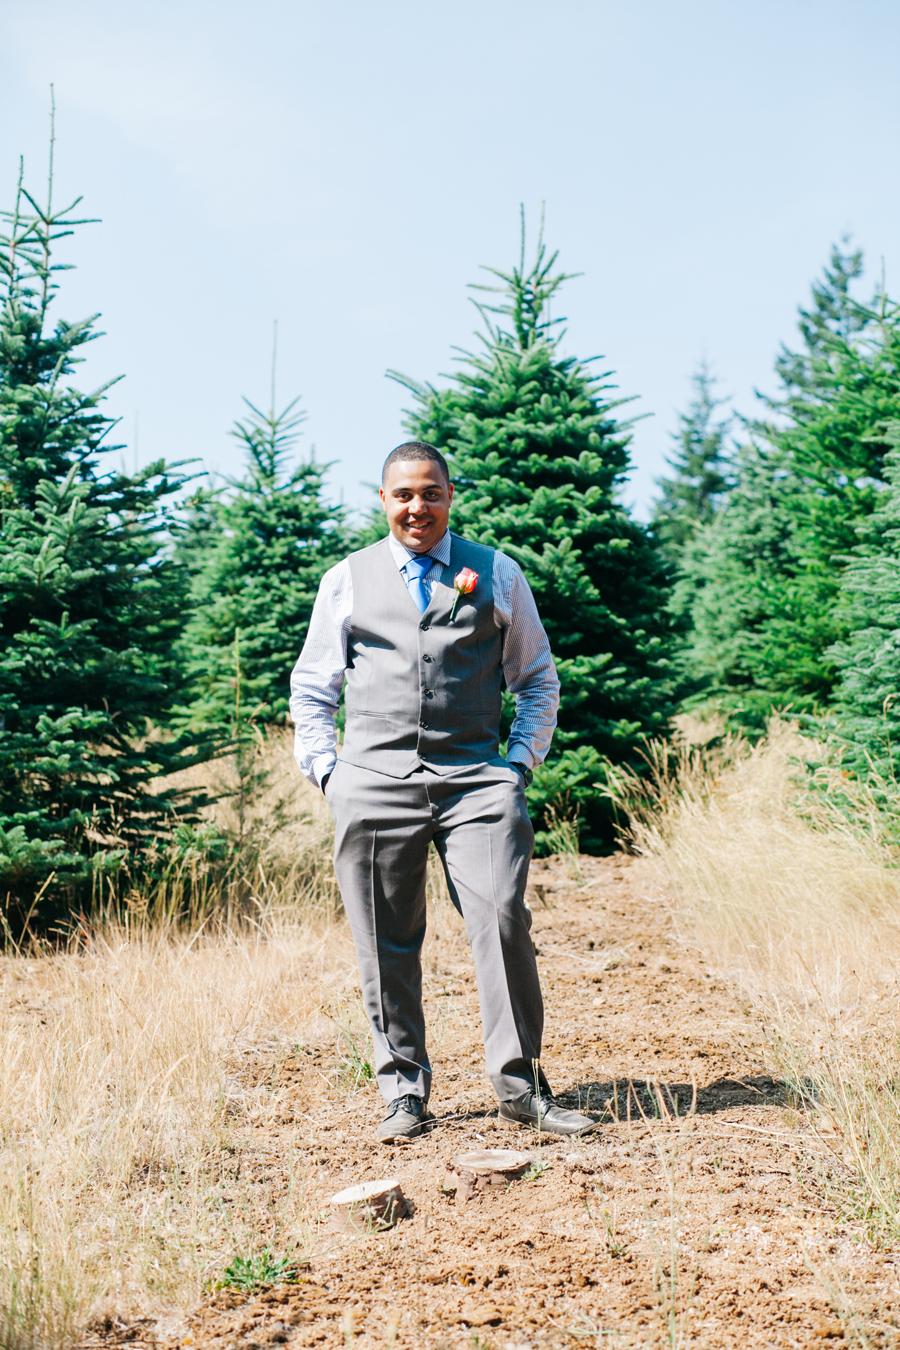 045-portland-oregon-silverton-tree-farm-wedding-katheryn-moran-photography.jpg